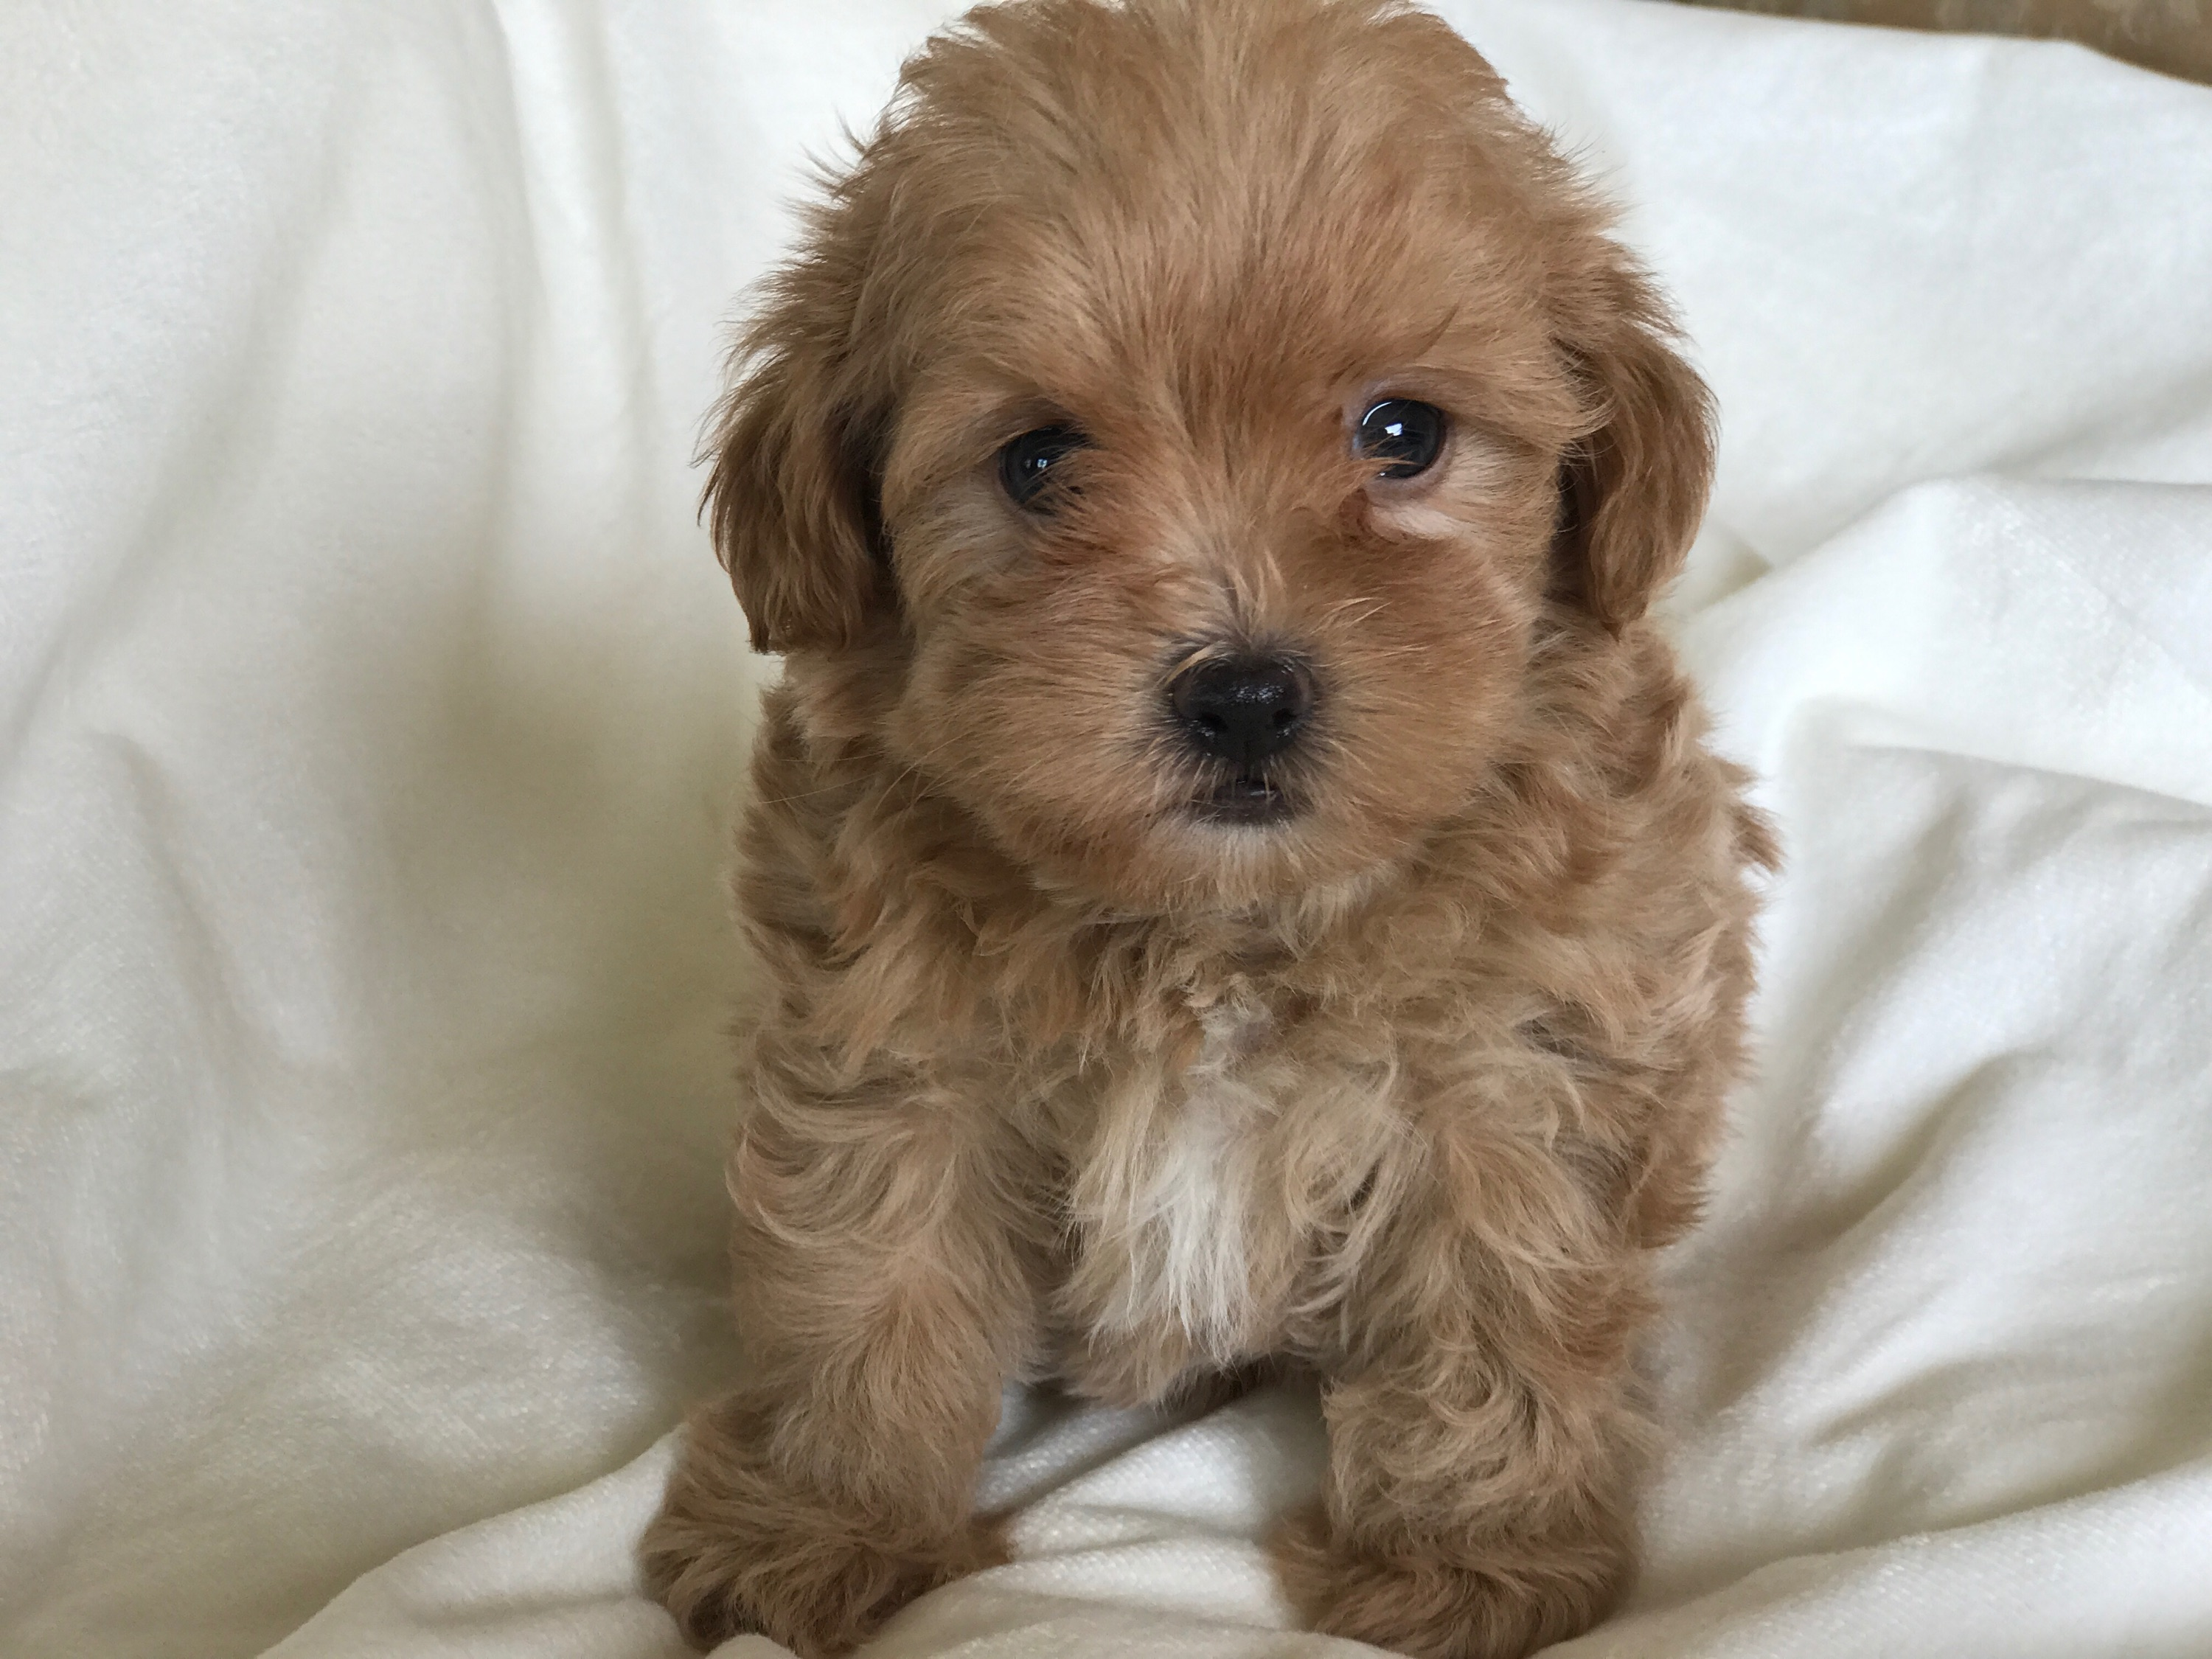 Adorable maltipoo puppies sweetest  8-10 lbs full grown up to date on shots deworm babydoll face